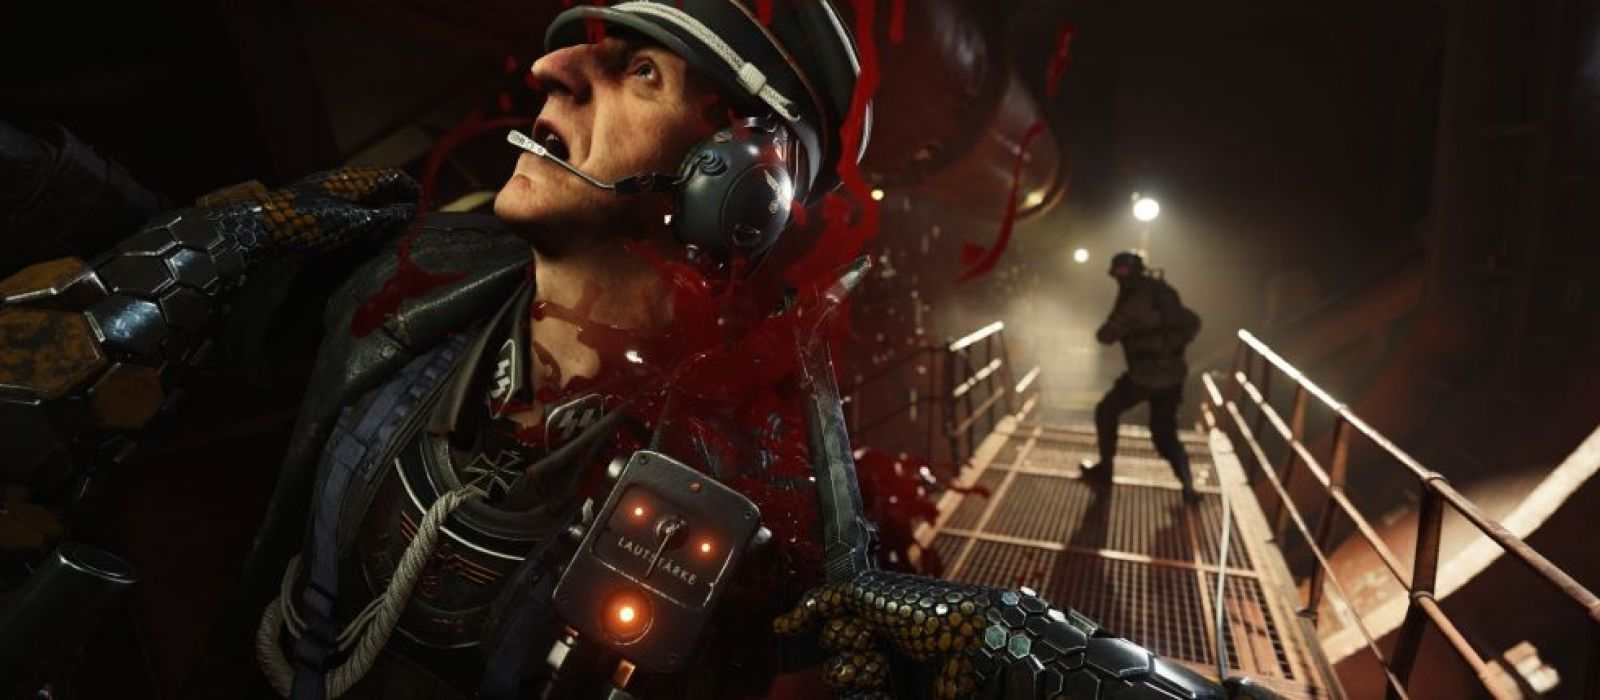 В новом видео Wolfenstein 2: The New Colossus показано, как главный герой расправляется с нацистами